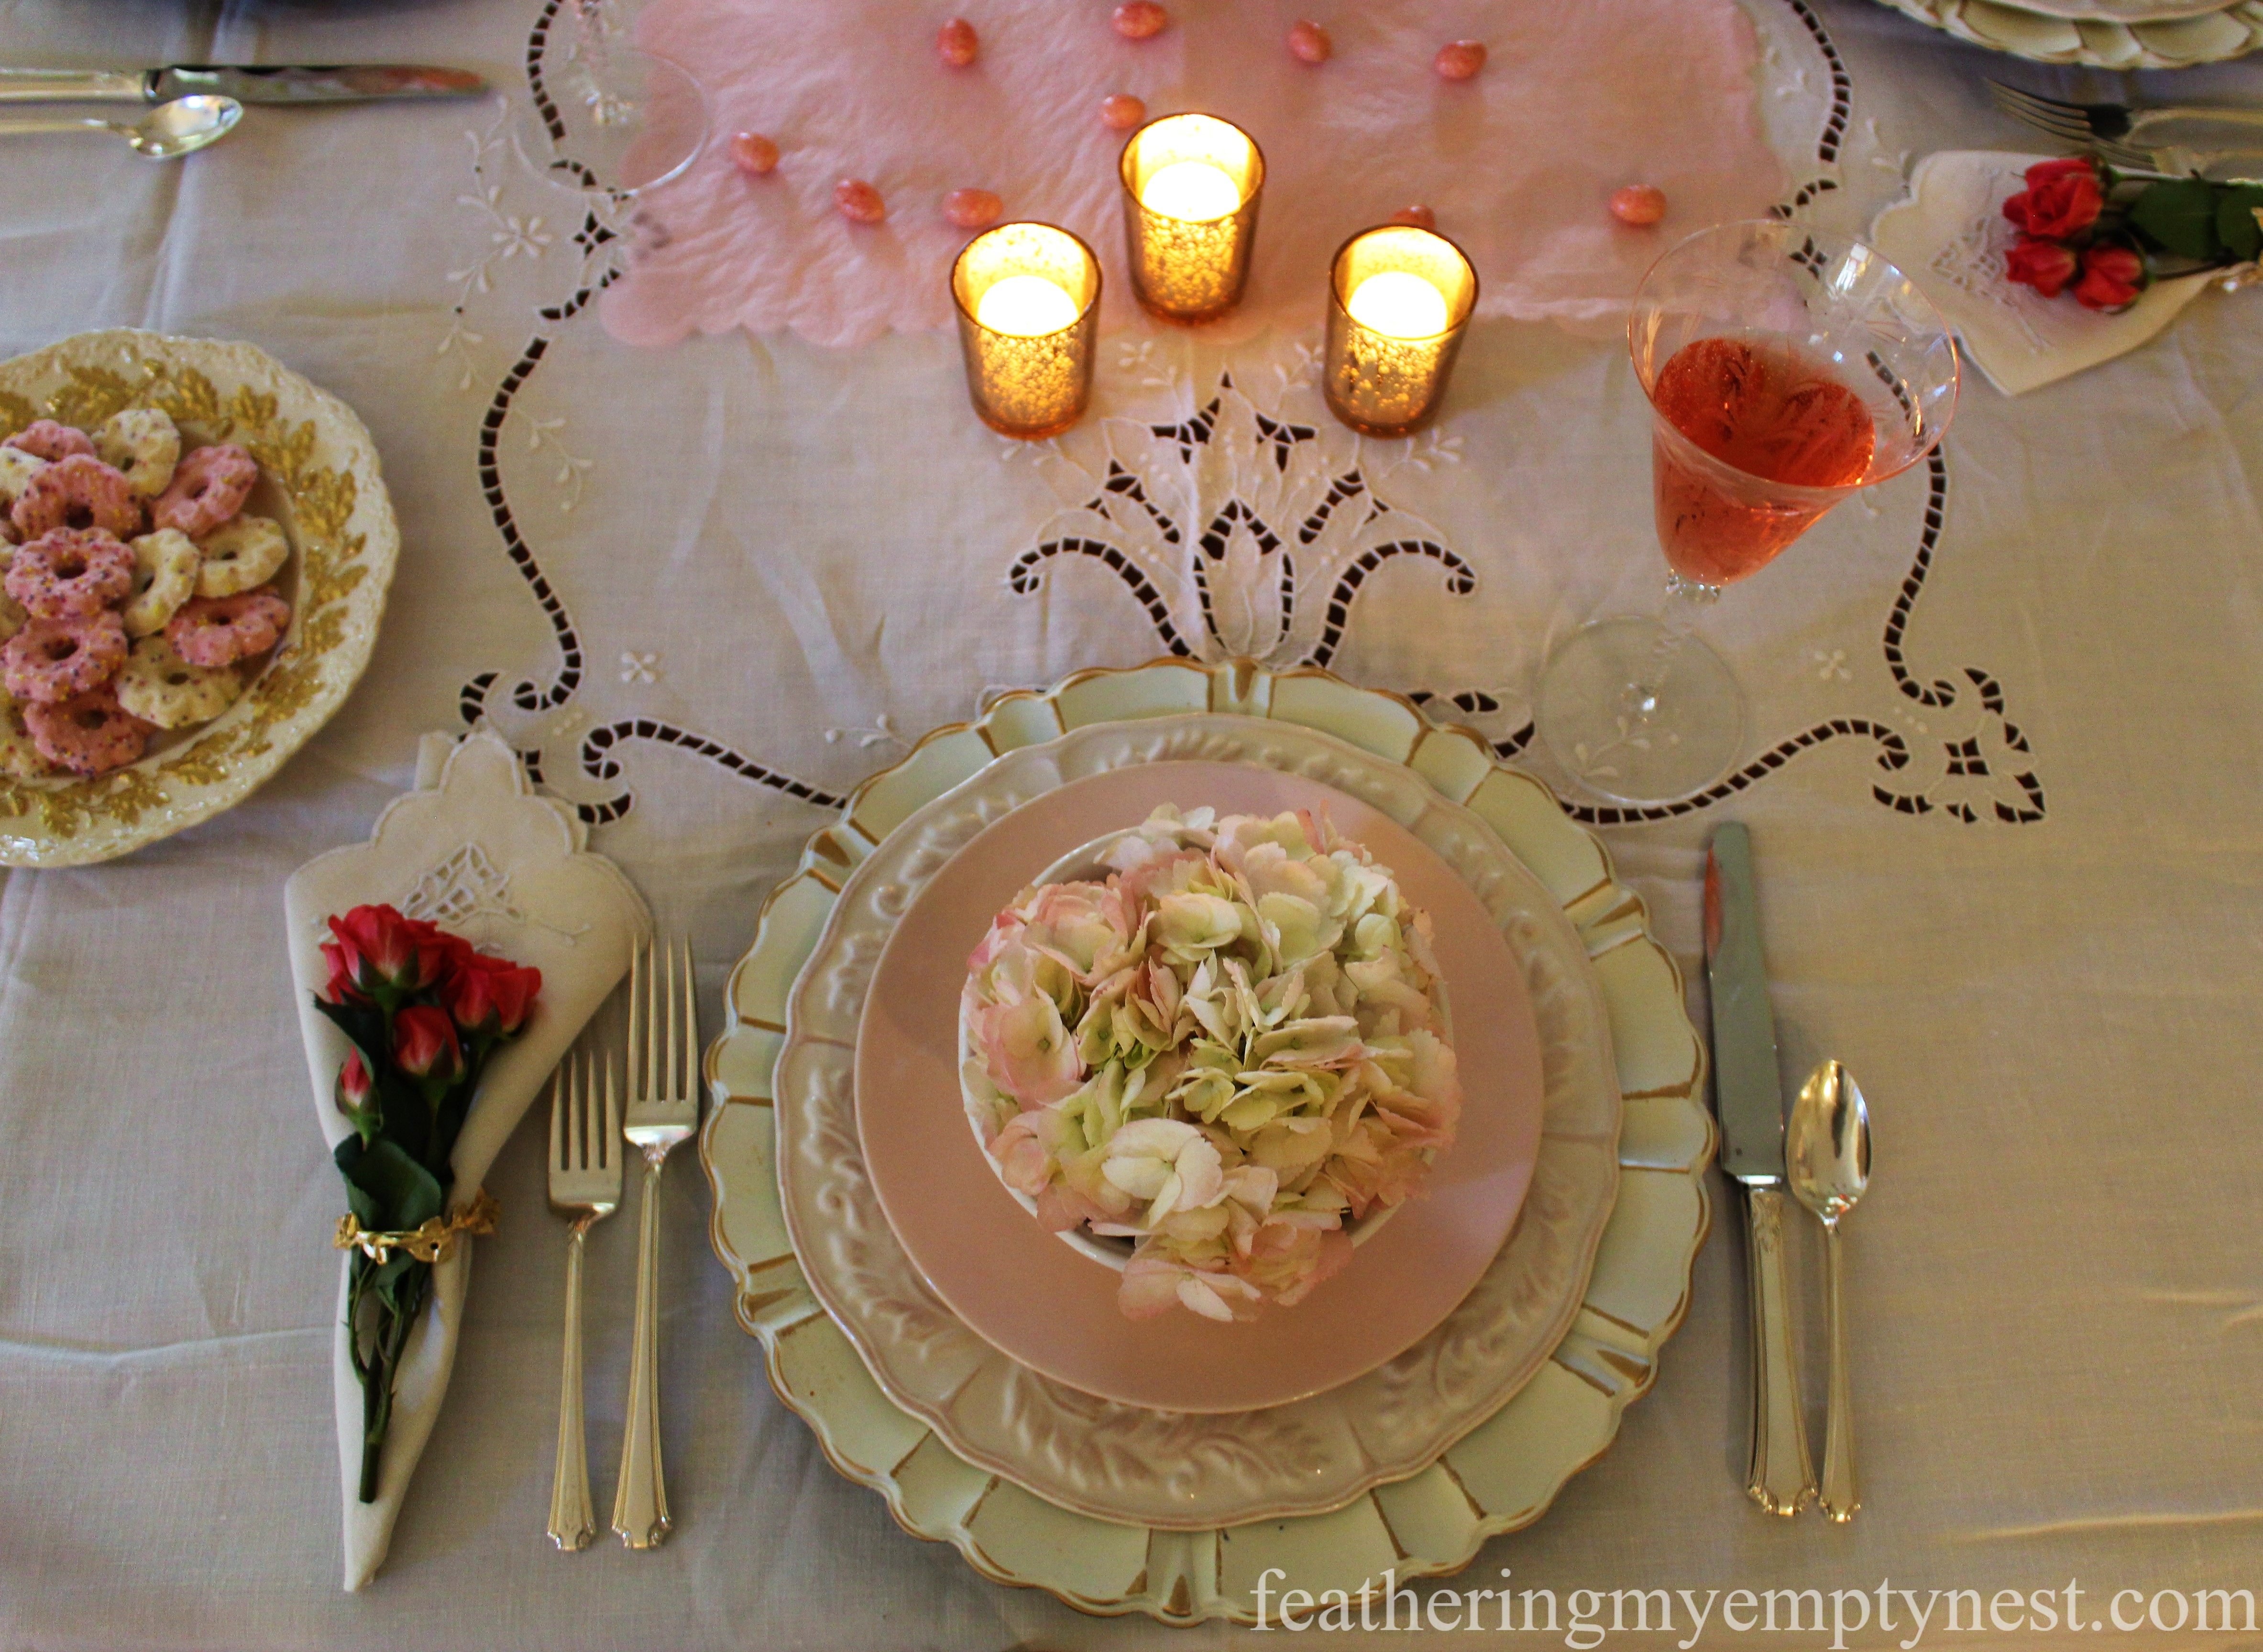 Valentine's table setting --How To Use The Language Of Flowers To Create A Blooming Valentine's Dinner